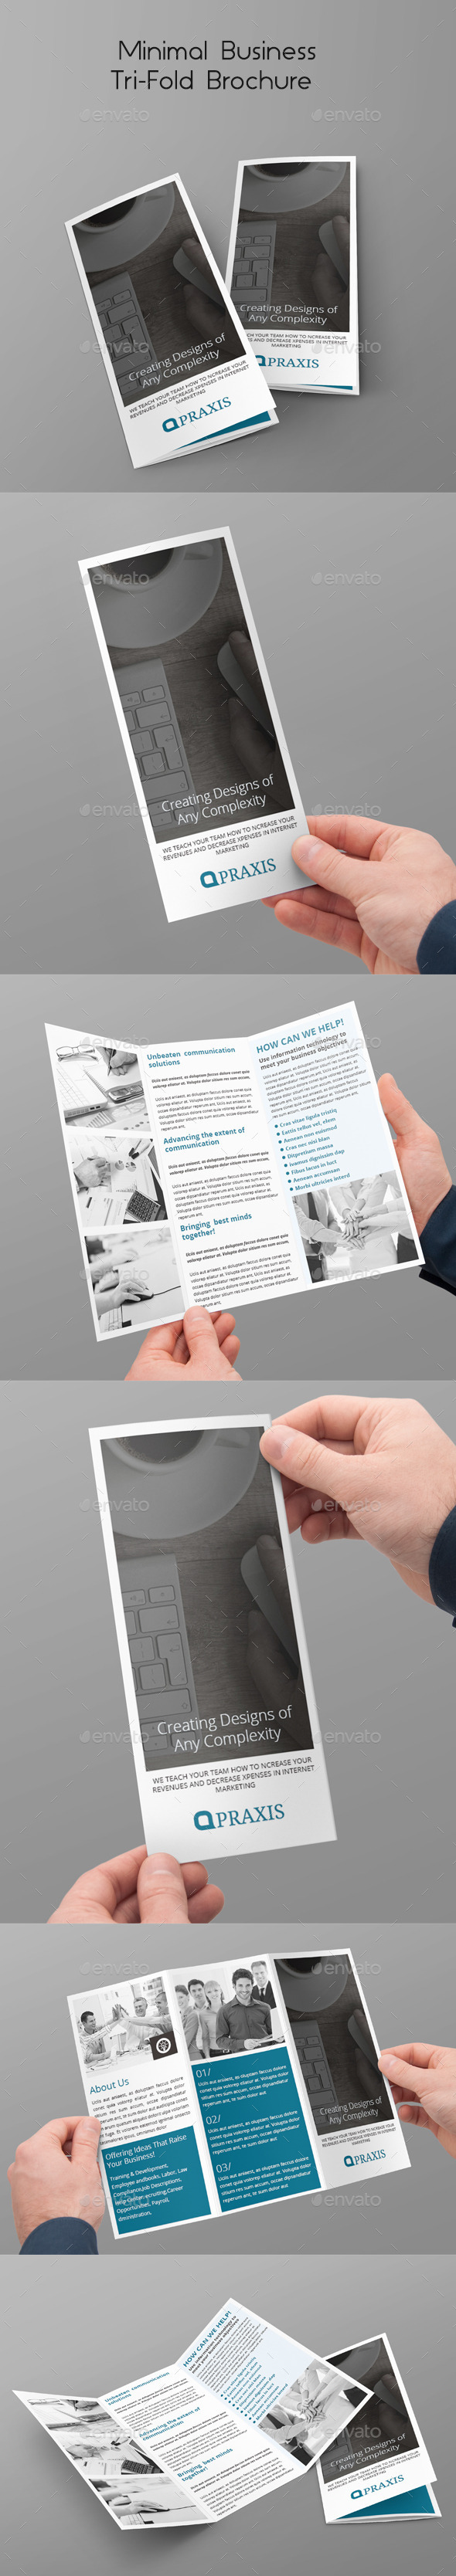 GraphicRiver Minimal Business Tri-Fold Brochure 10444081